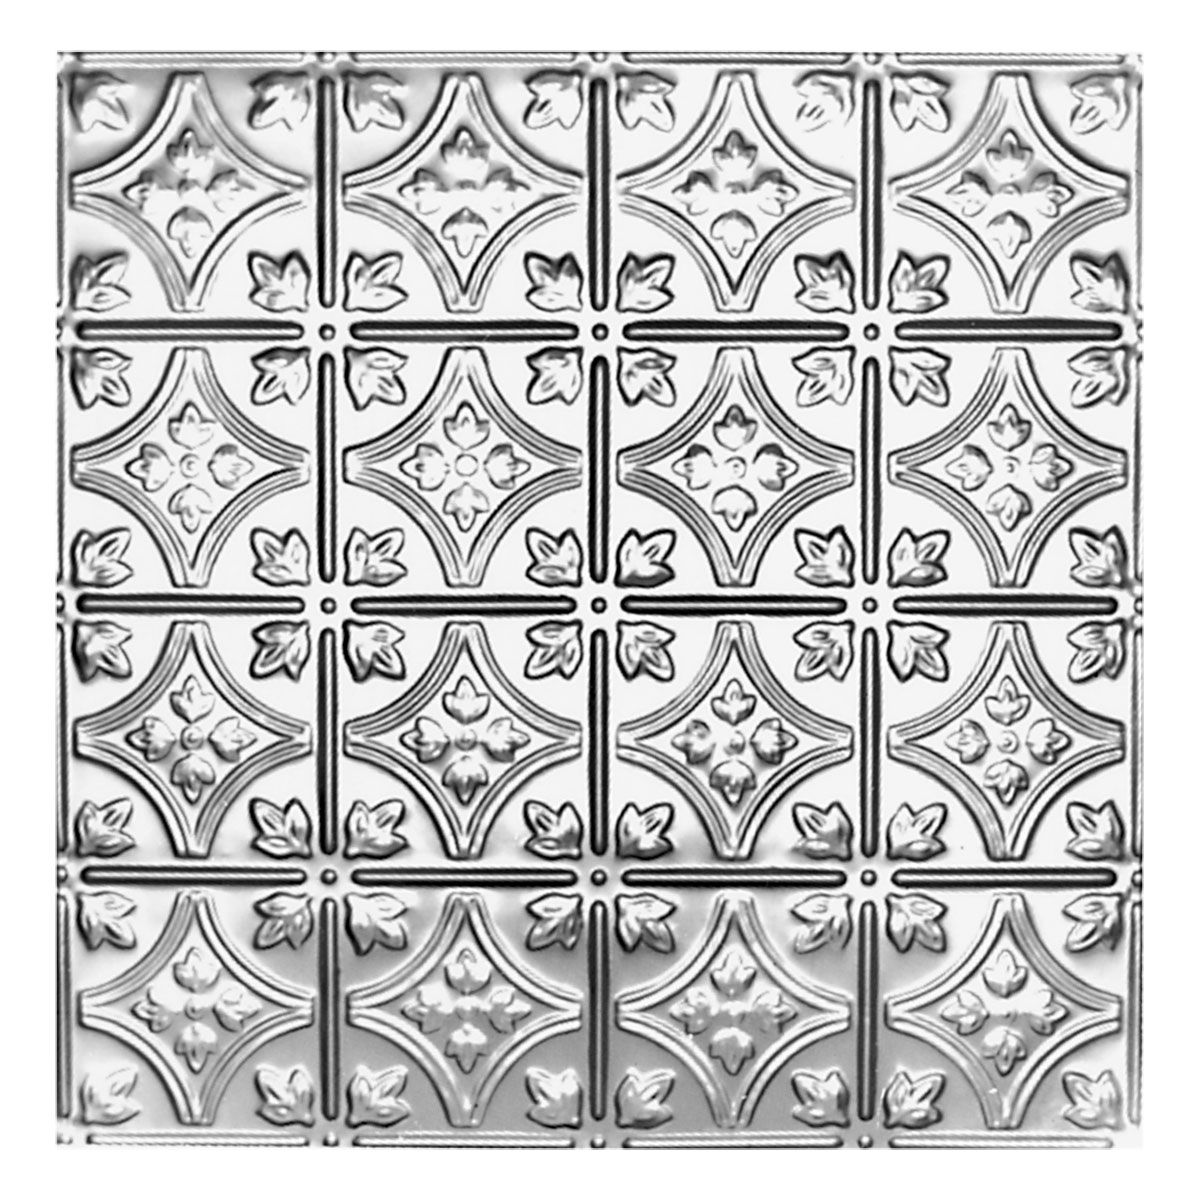 Ceiling tilesg ceiling tile ideas decorative ceiling tiles small floral tin ceiling tiles to use on backsplash from tin ceiling xpress dailygadgetfo Image collections